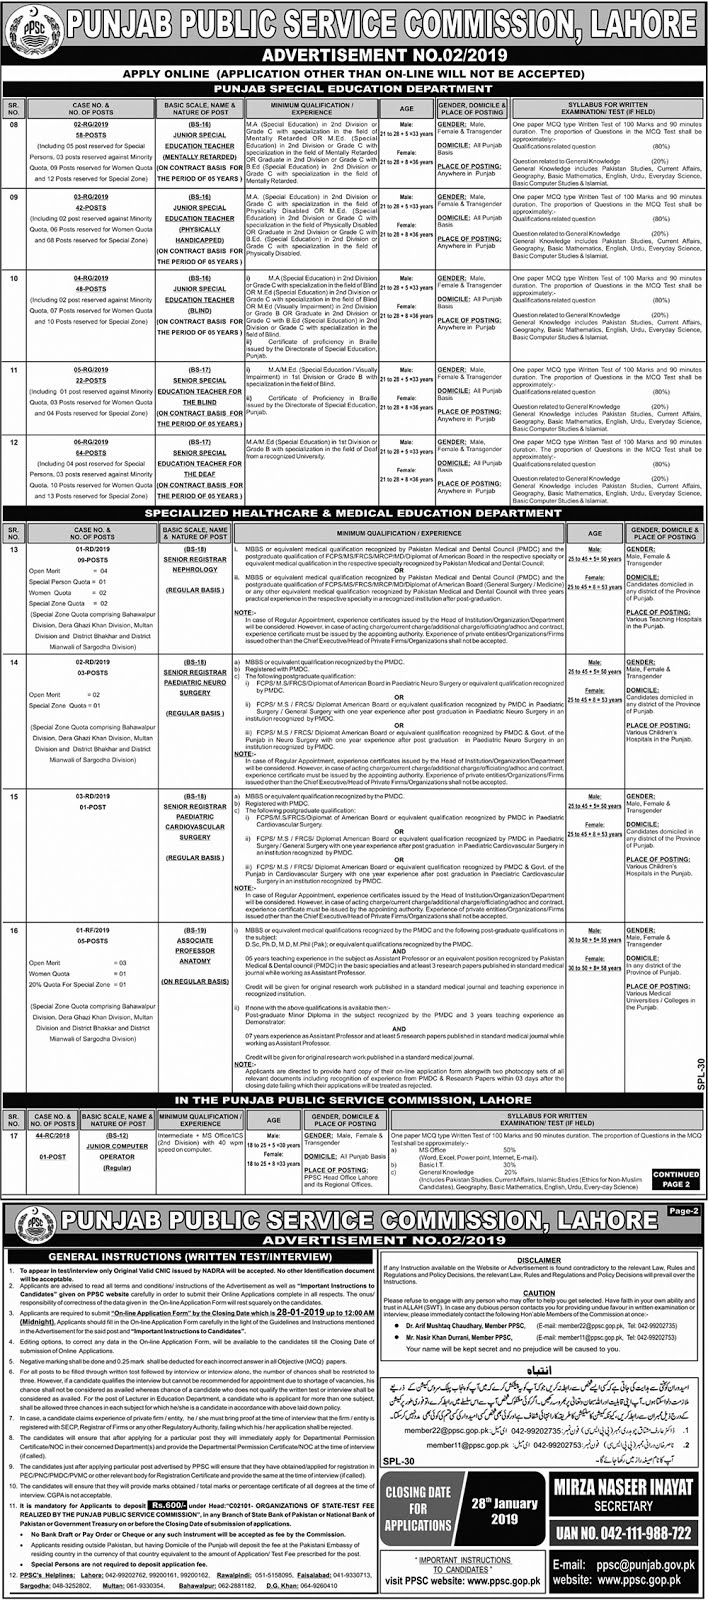 punjab public service commission,punjab public service commission jobs 2018,punjab public service commission lahore jobs,jobs in punjab public service commission,ppsc jobs,public service commission jobs,punjab public service commsion,punjab service commission,punjab public service commission jobs,new jobs in punjab public service commission,punjab jobs,punjab public service commission (